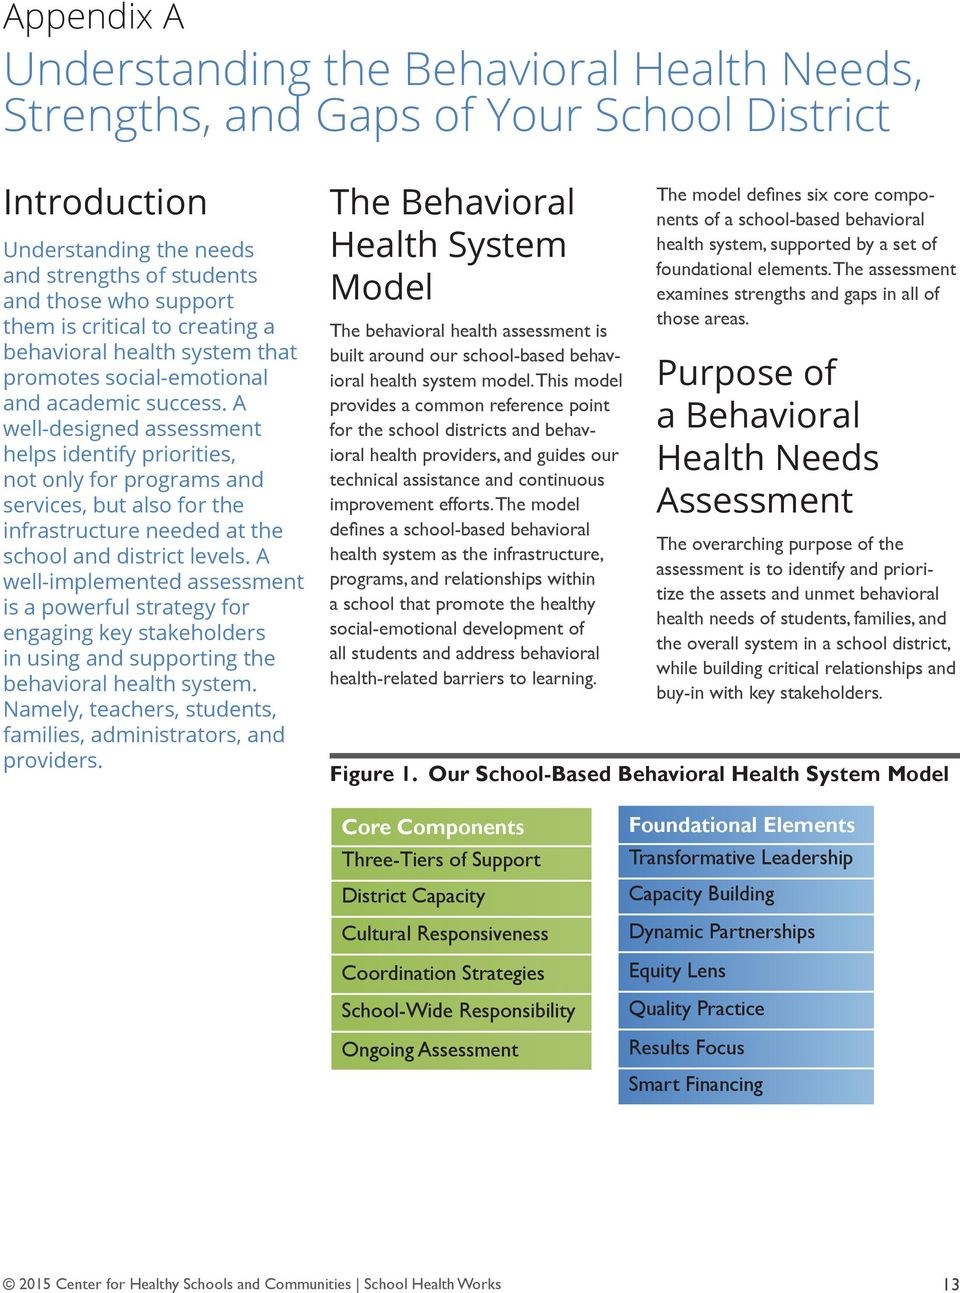 A well-designed assessment helps identify priorities, not only for programs and services, but also for the infrastructure needed at the school and district levels.